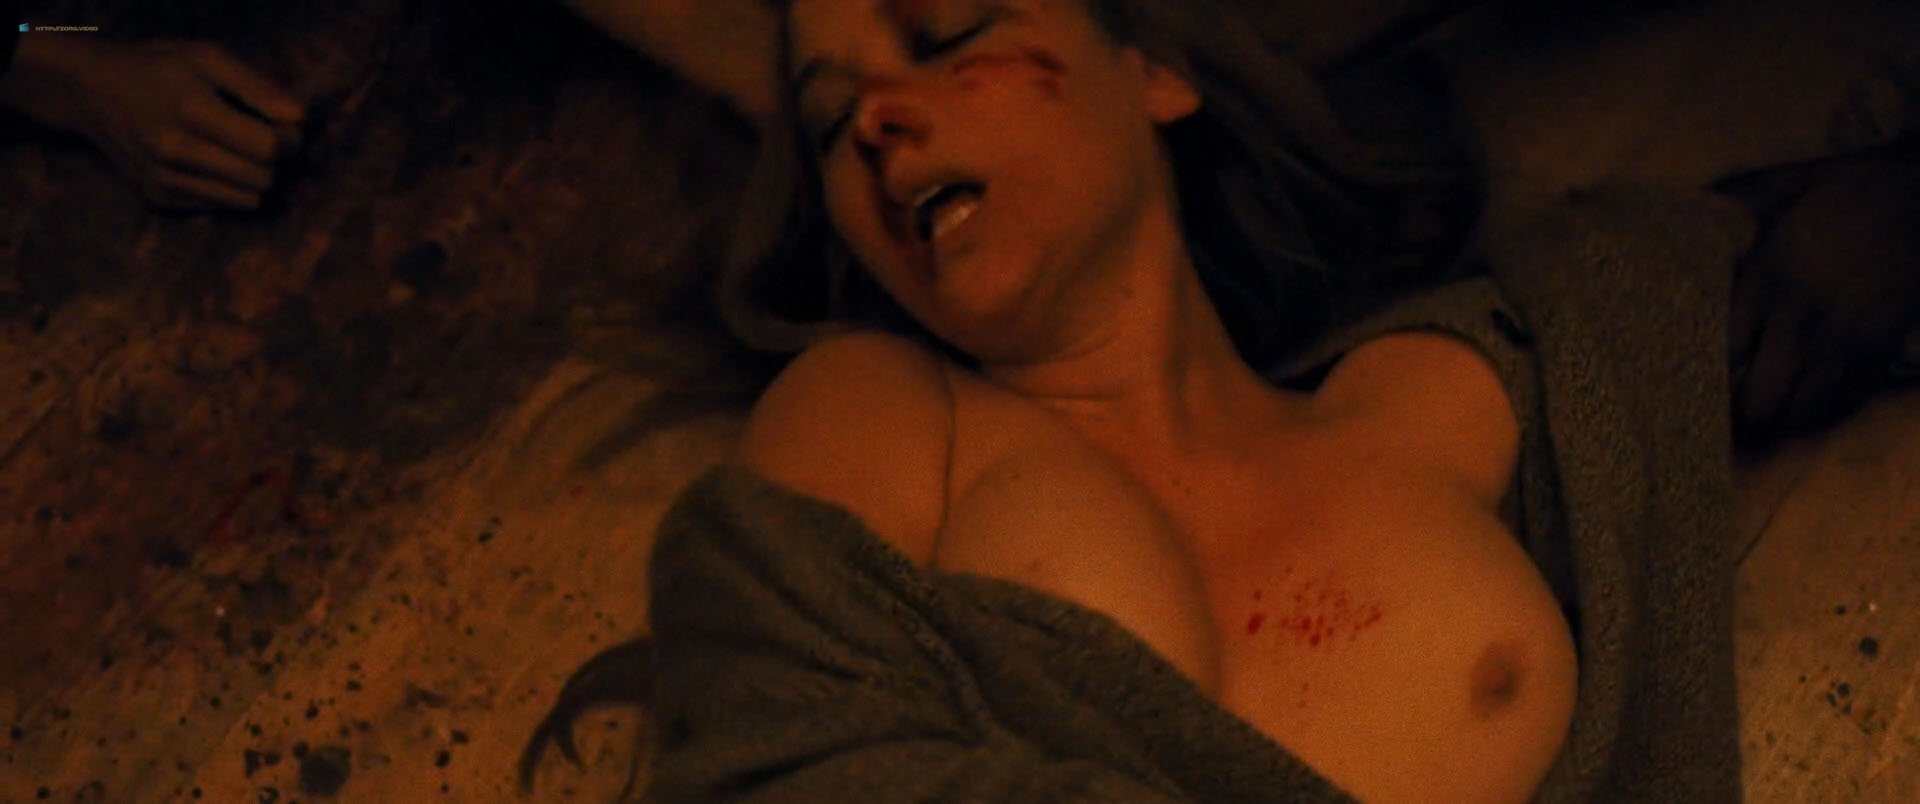 Jennifer Lawrence Tits In Mother photo 30